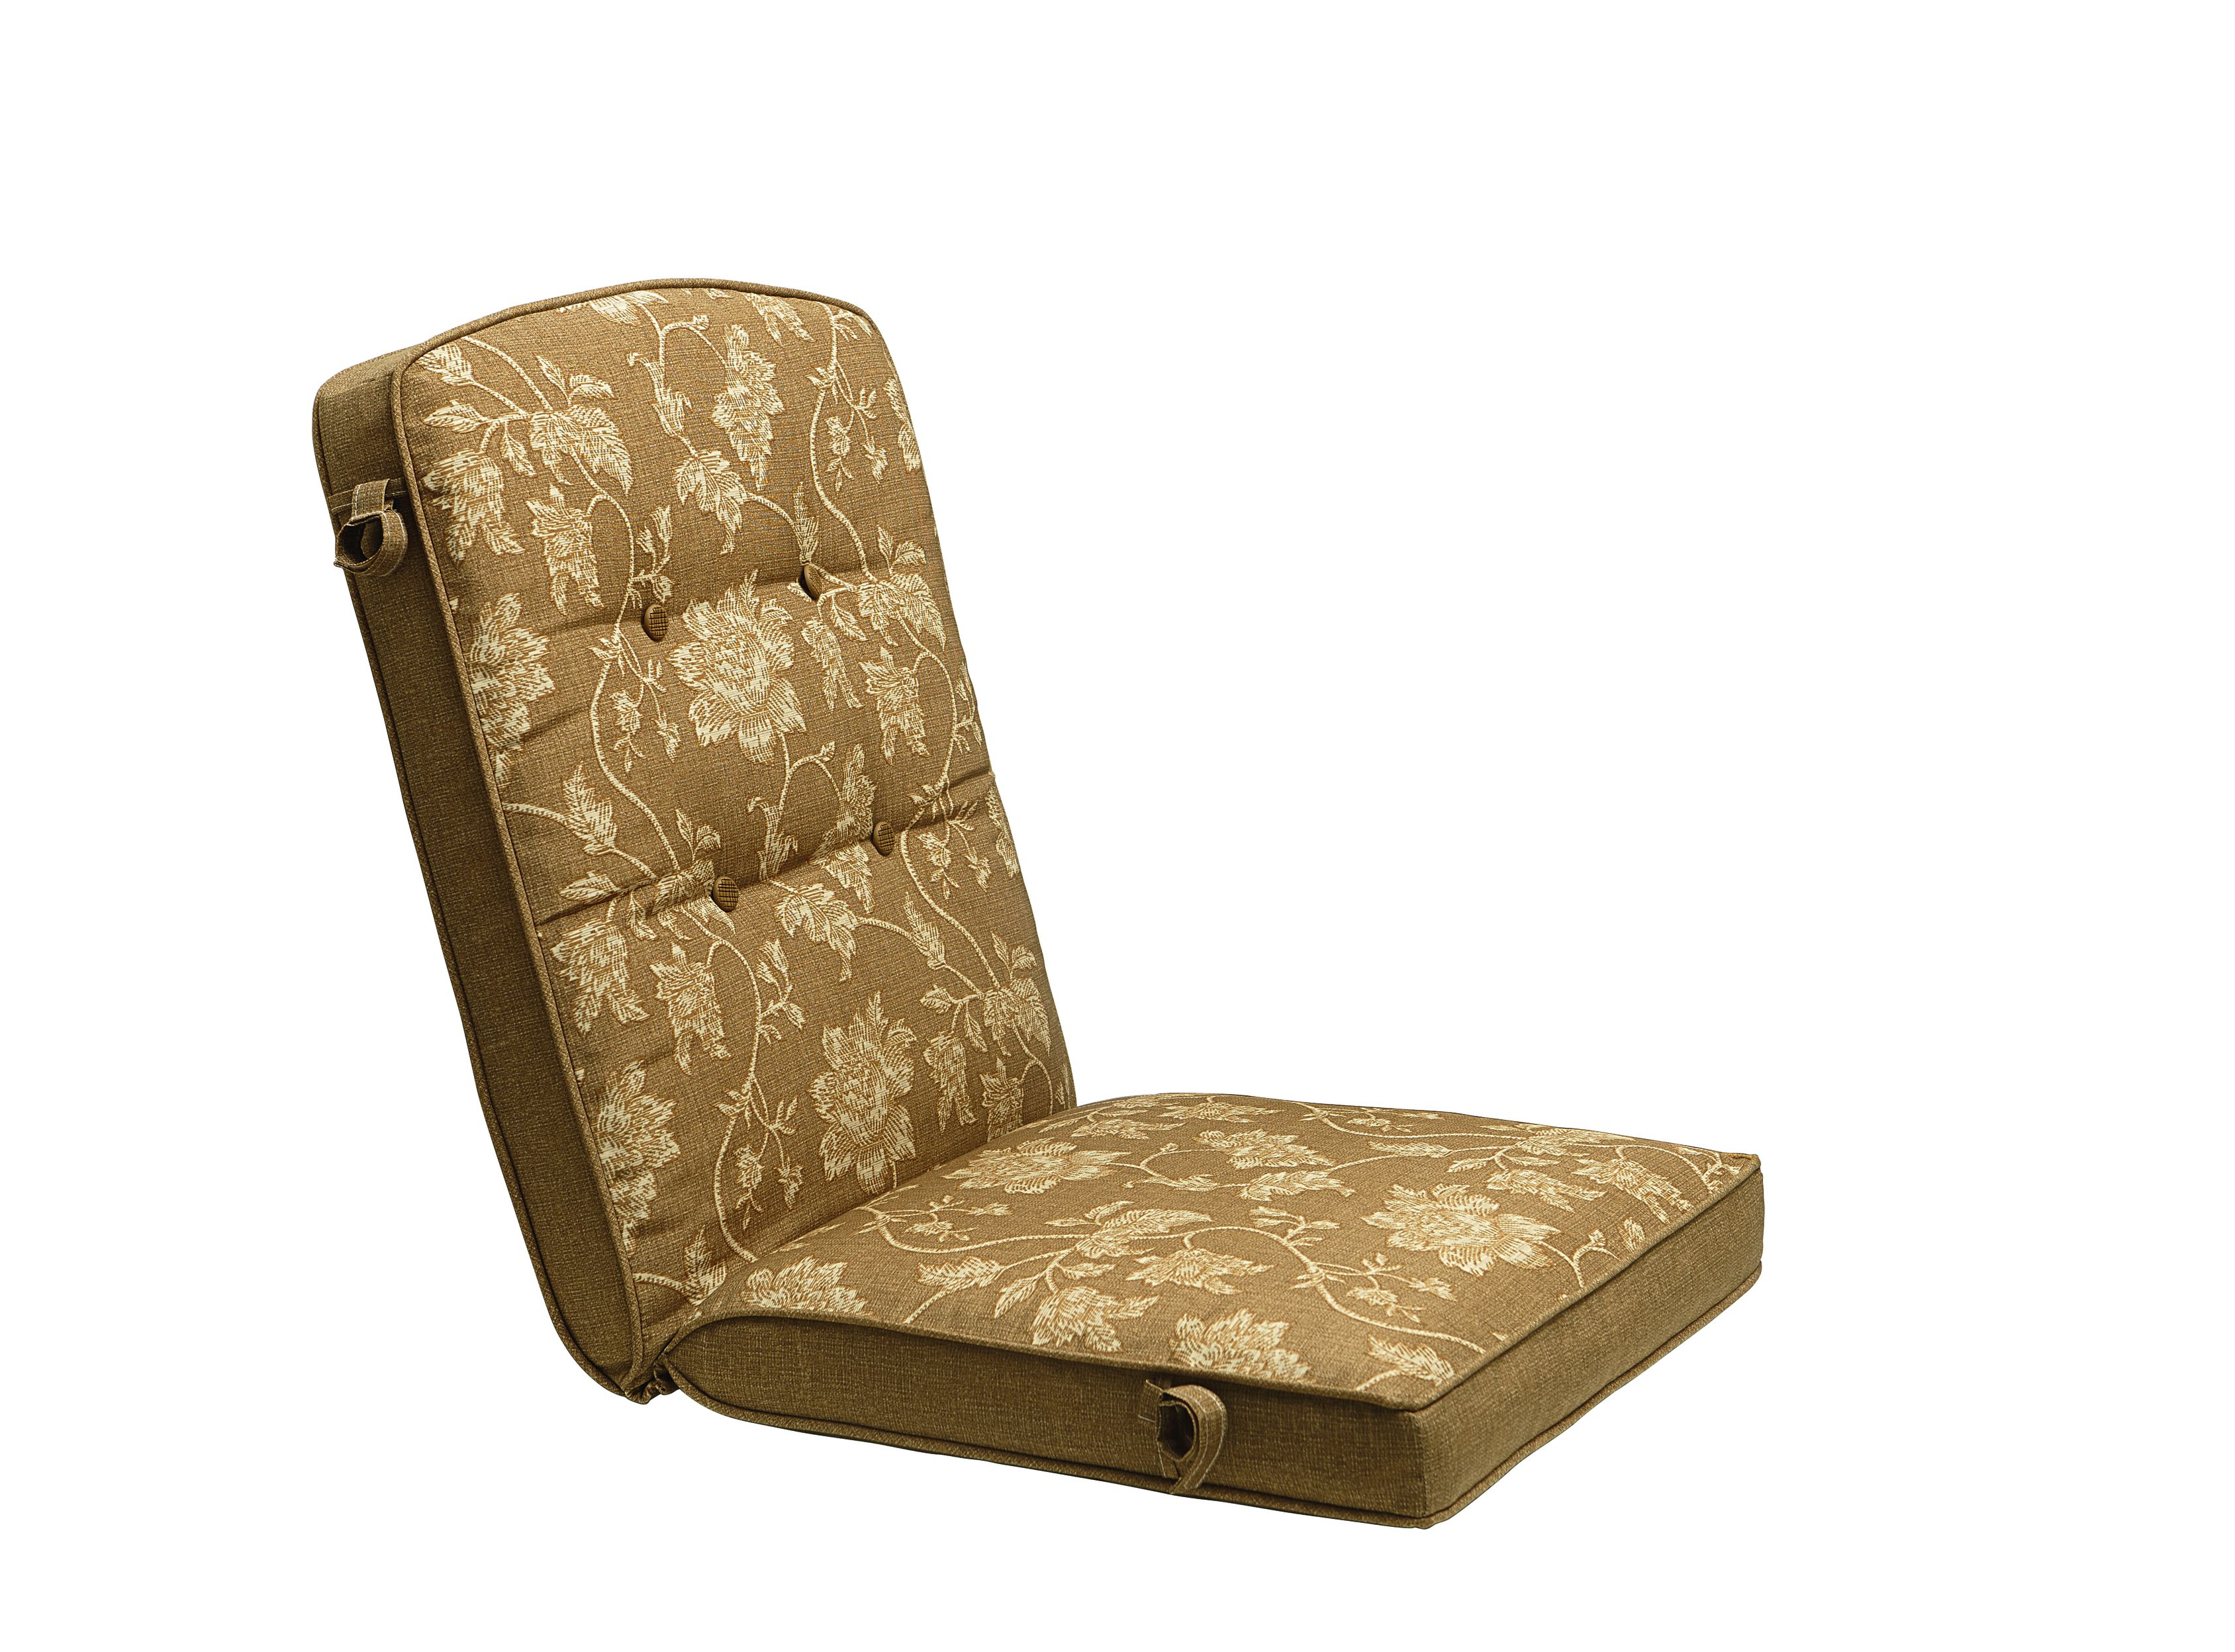 kmart chair cushions baby high chairs at target jaclyn smith cora replacement golden brown cushion - outdoor living patio furniture ...